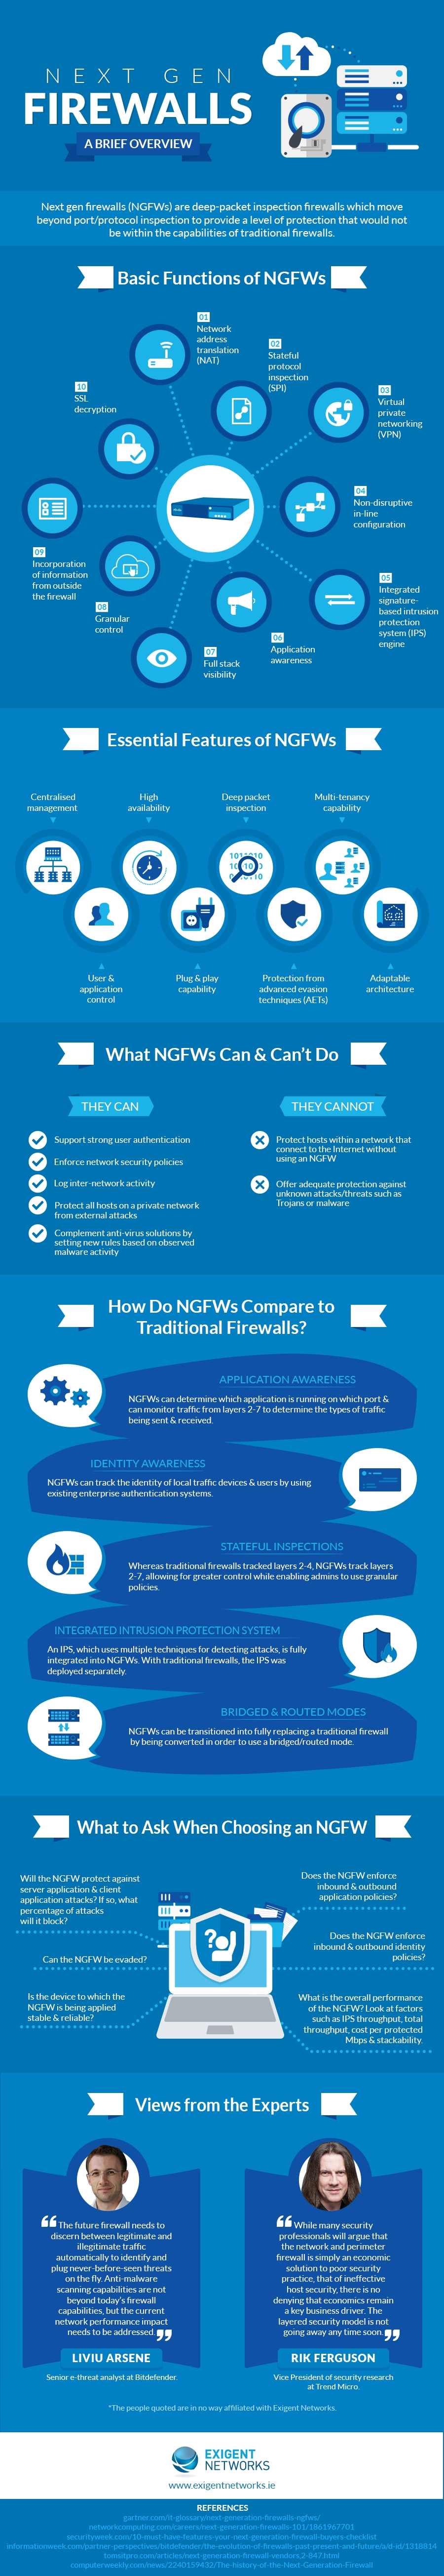 Next Gen Firewalls - A Brief Overview